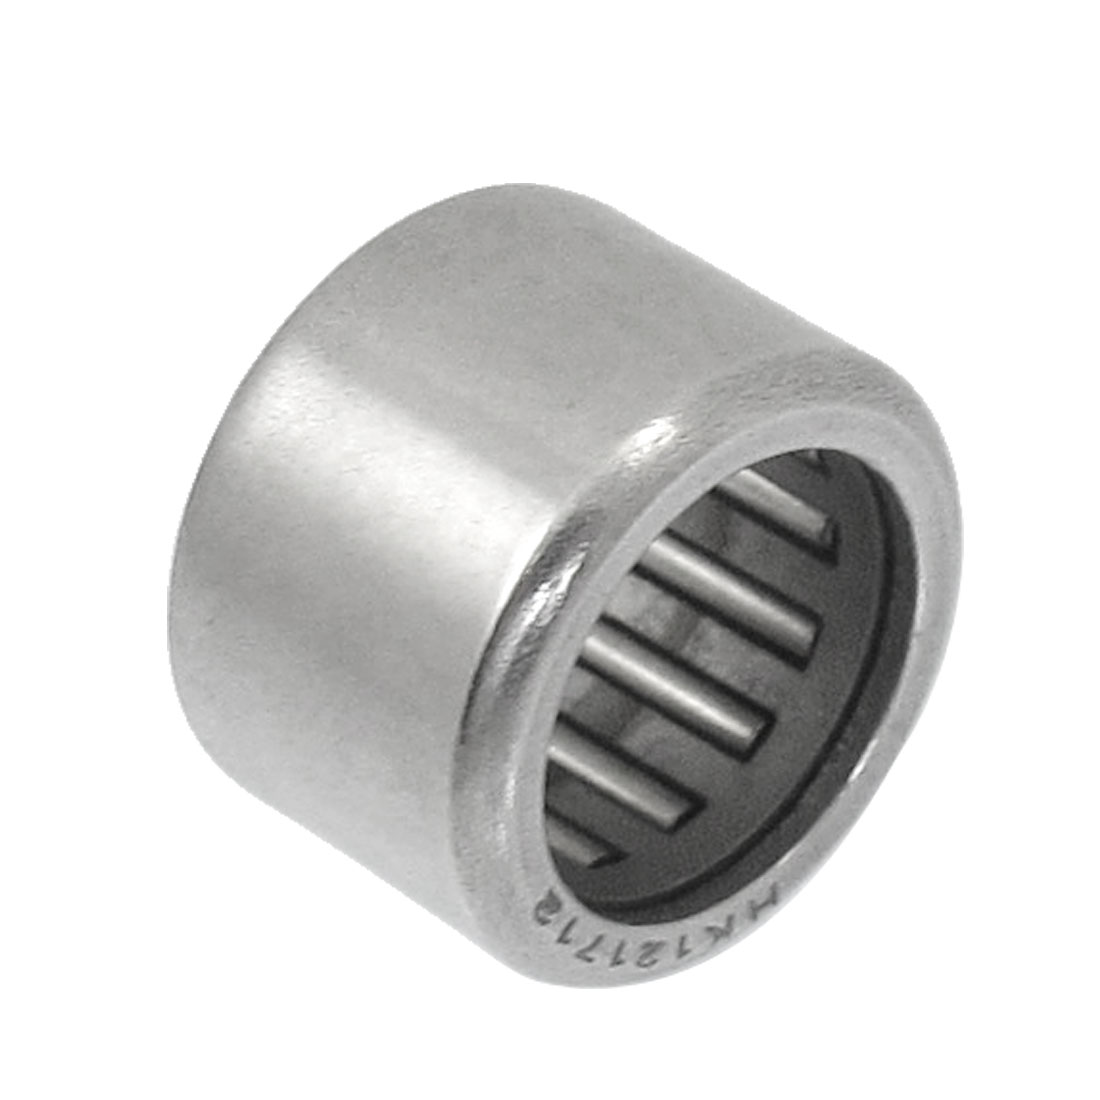 HK121712 12mm x 17mm x 12mm Drawn Cup Caged Drawn Cup Needle Roller Bearing